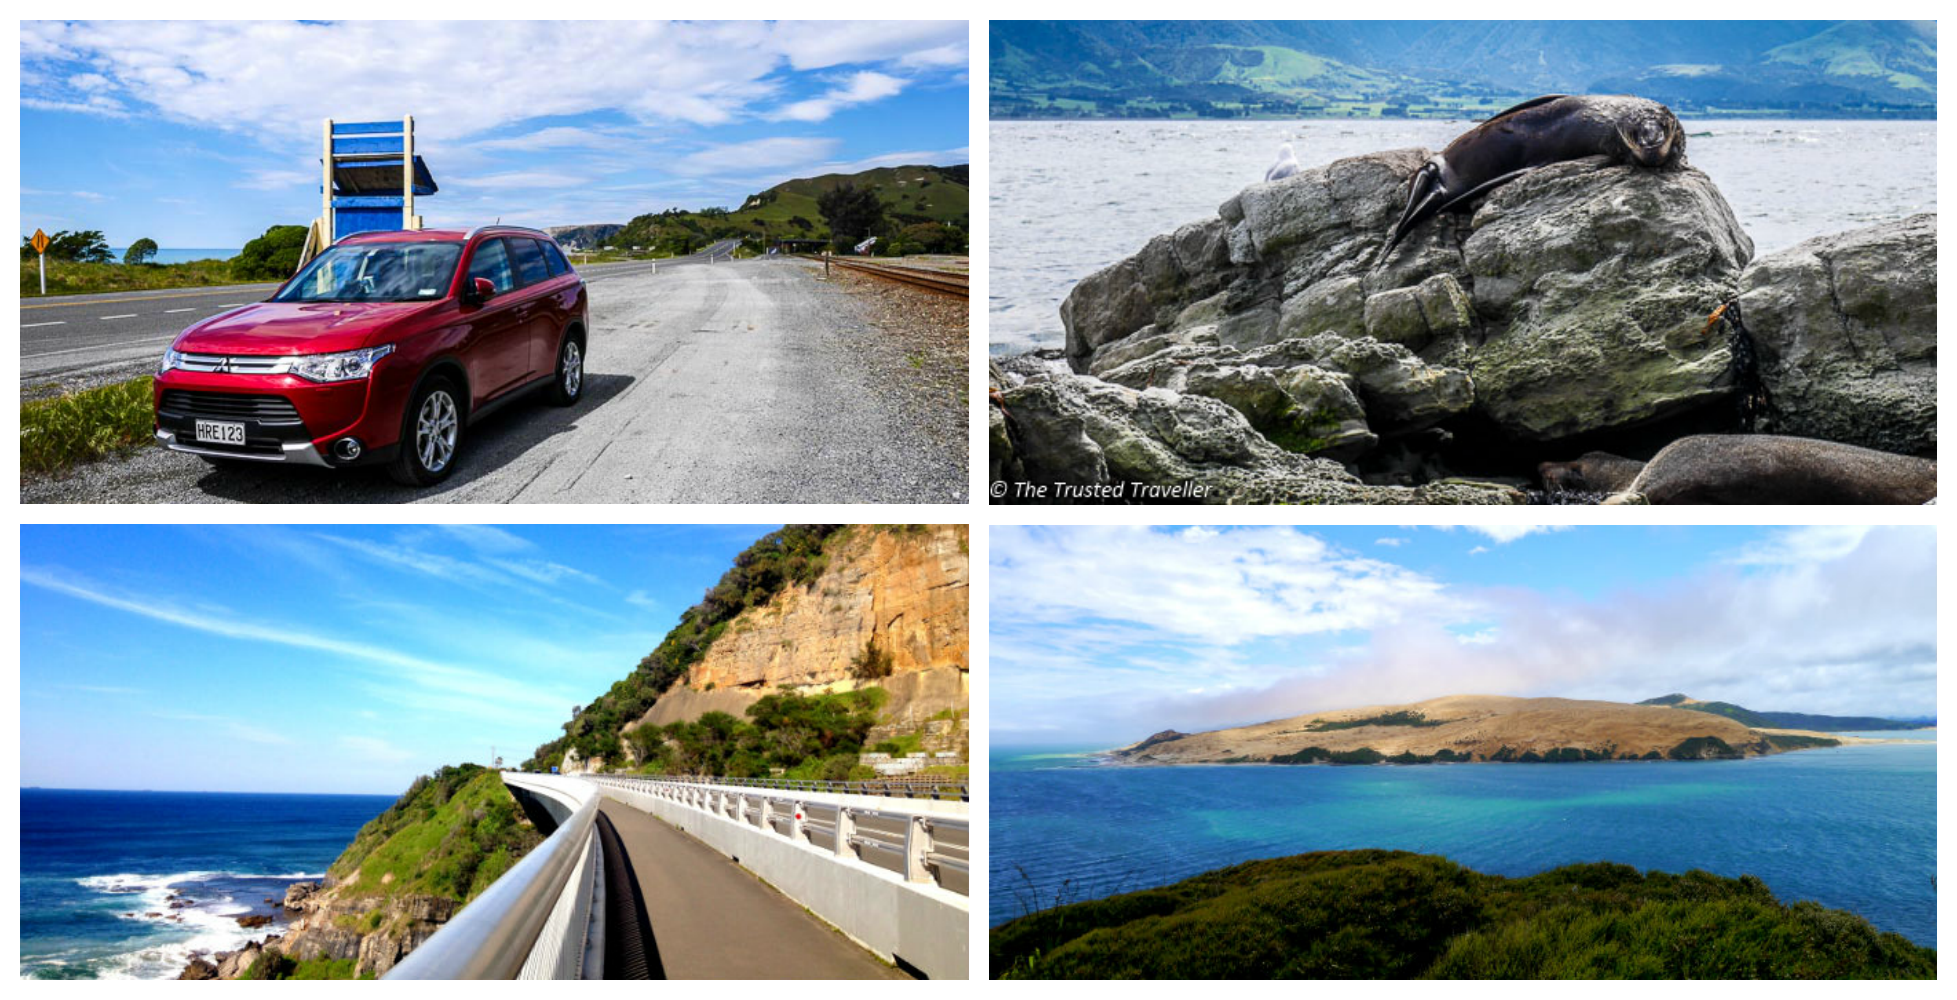 Driving through Australia and New Zealand